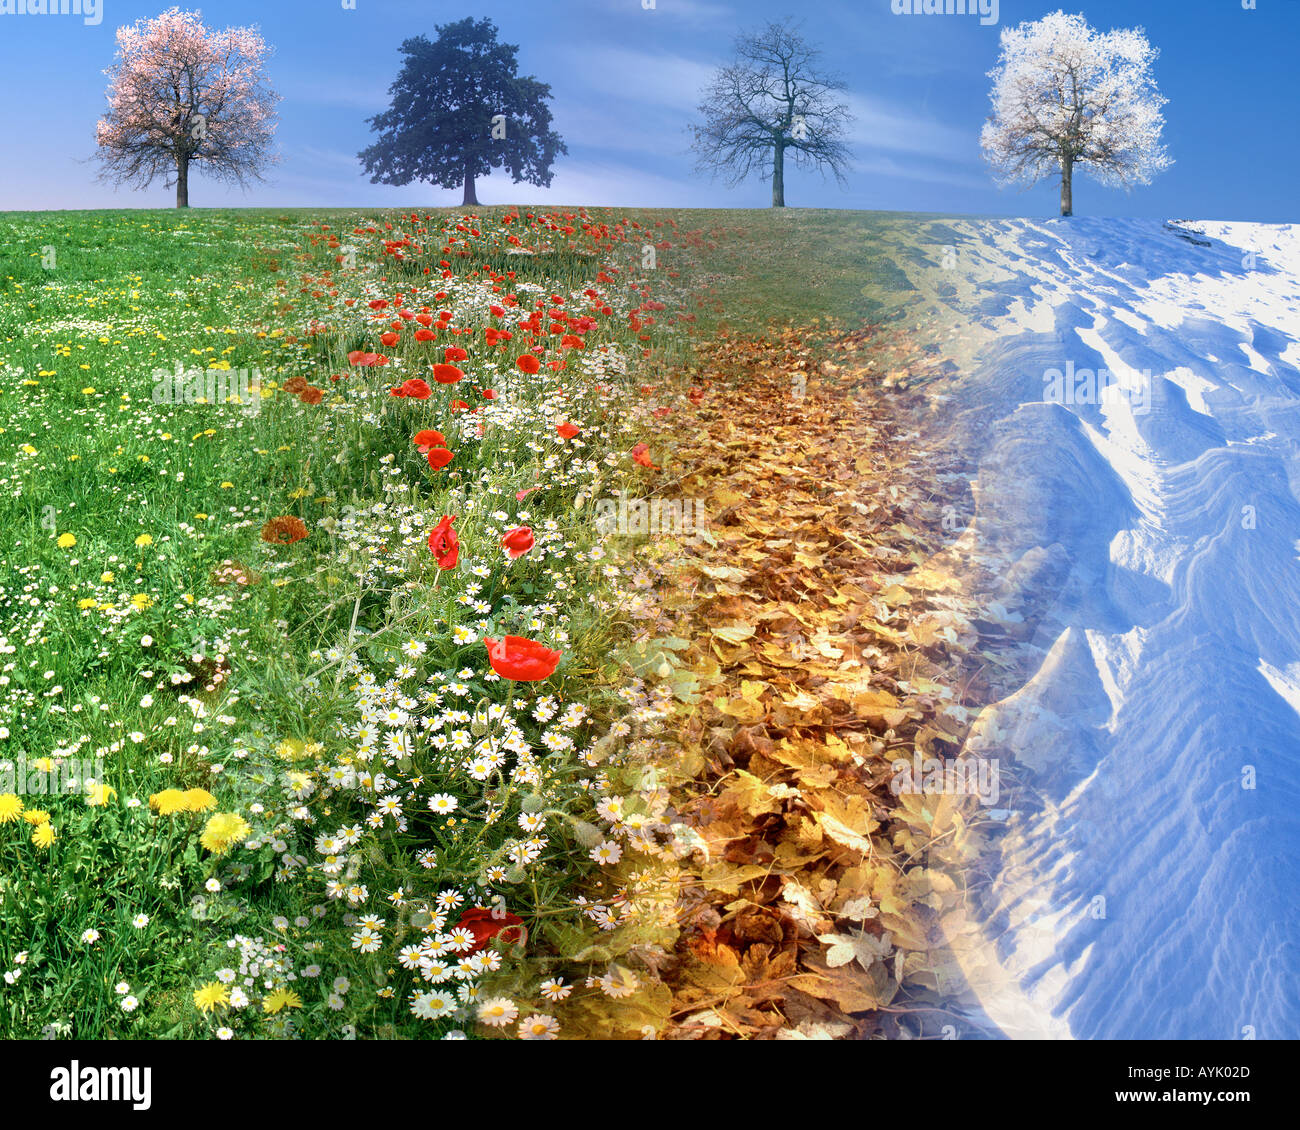 CONCEPT PHOTOGRAPHY: The Four Seasons combined in one image - Stock Image